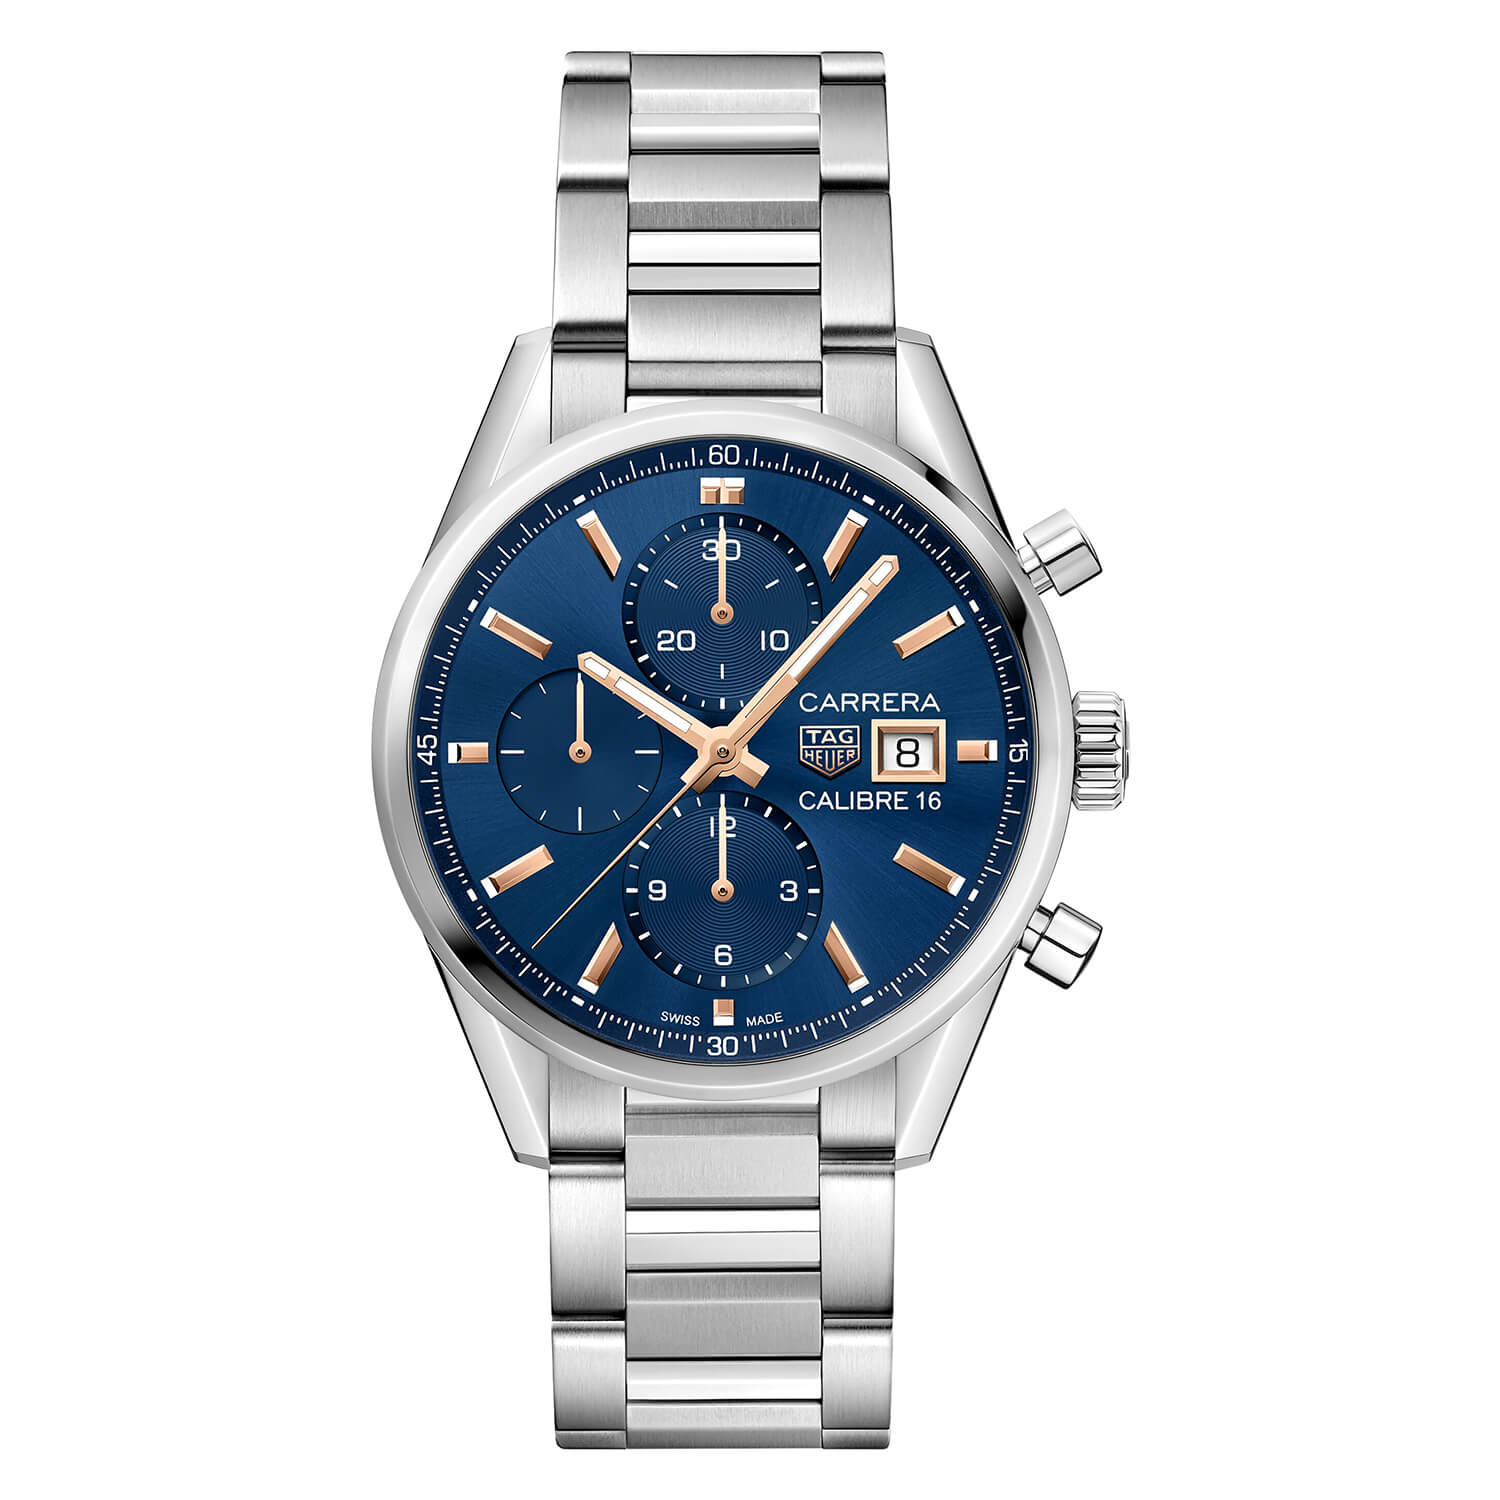 TAG Heuer Carrera Blue Chronograph Dial & Stainless Steel Bracelet 41mm Watch